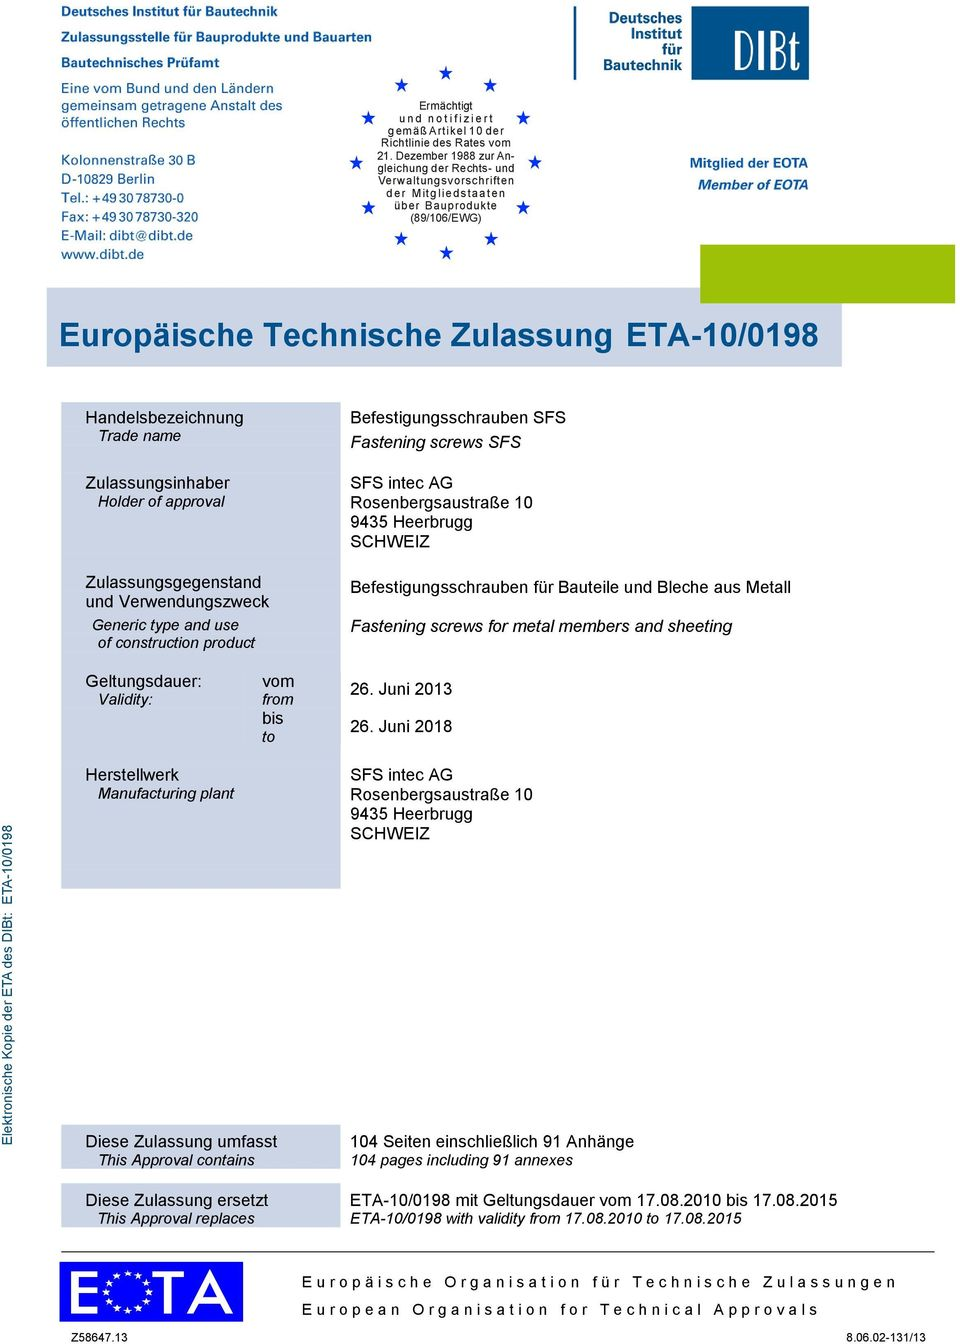 Zulassungsinhaber Holder of approval Zulassungsgegenstand und Verwendungszweck Generic type and use of construction product Befestigungsschrauben SFS Fastening screws SFS SFS intec AG